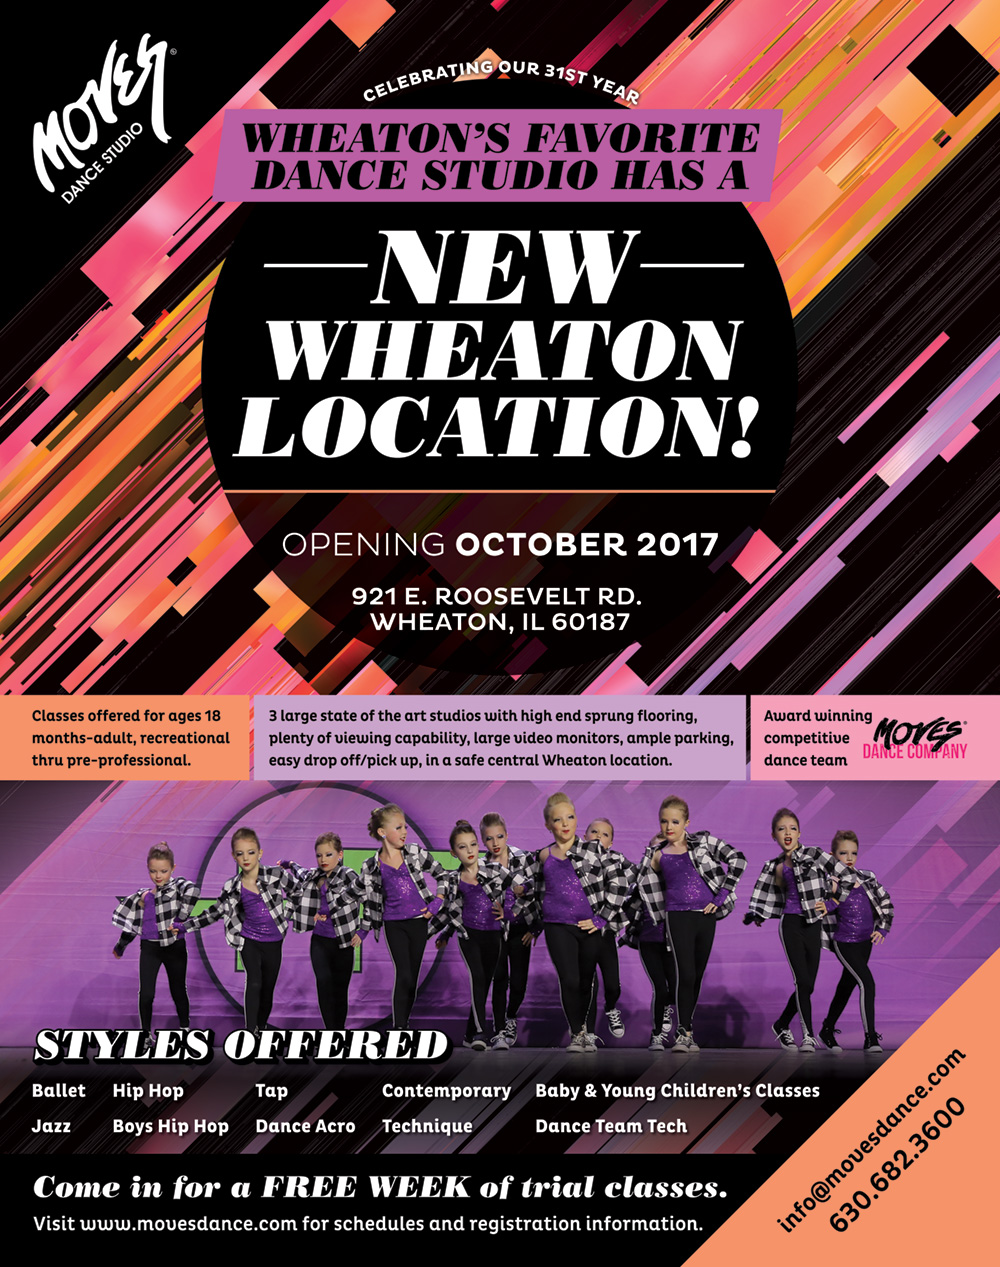 Moves Dance Studio New Location Poster